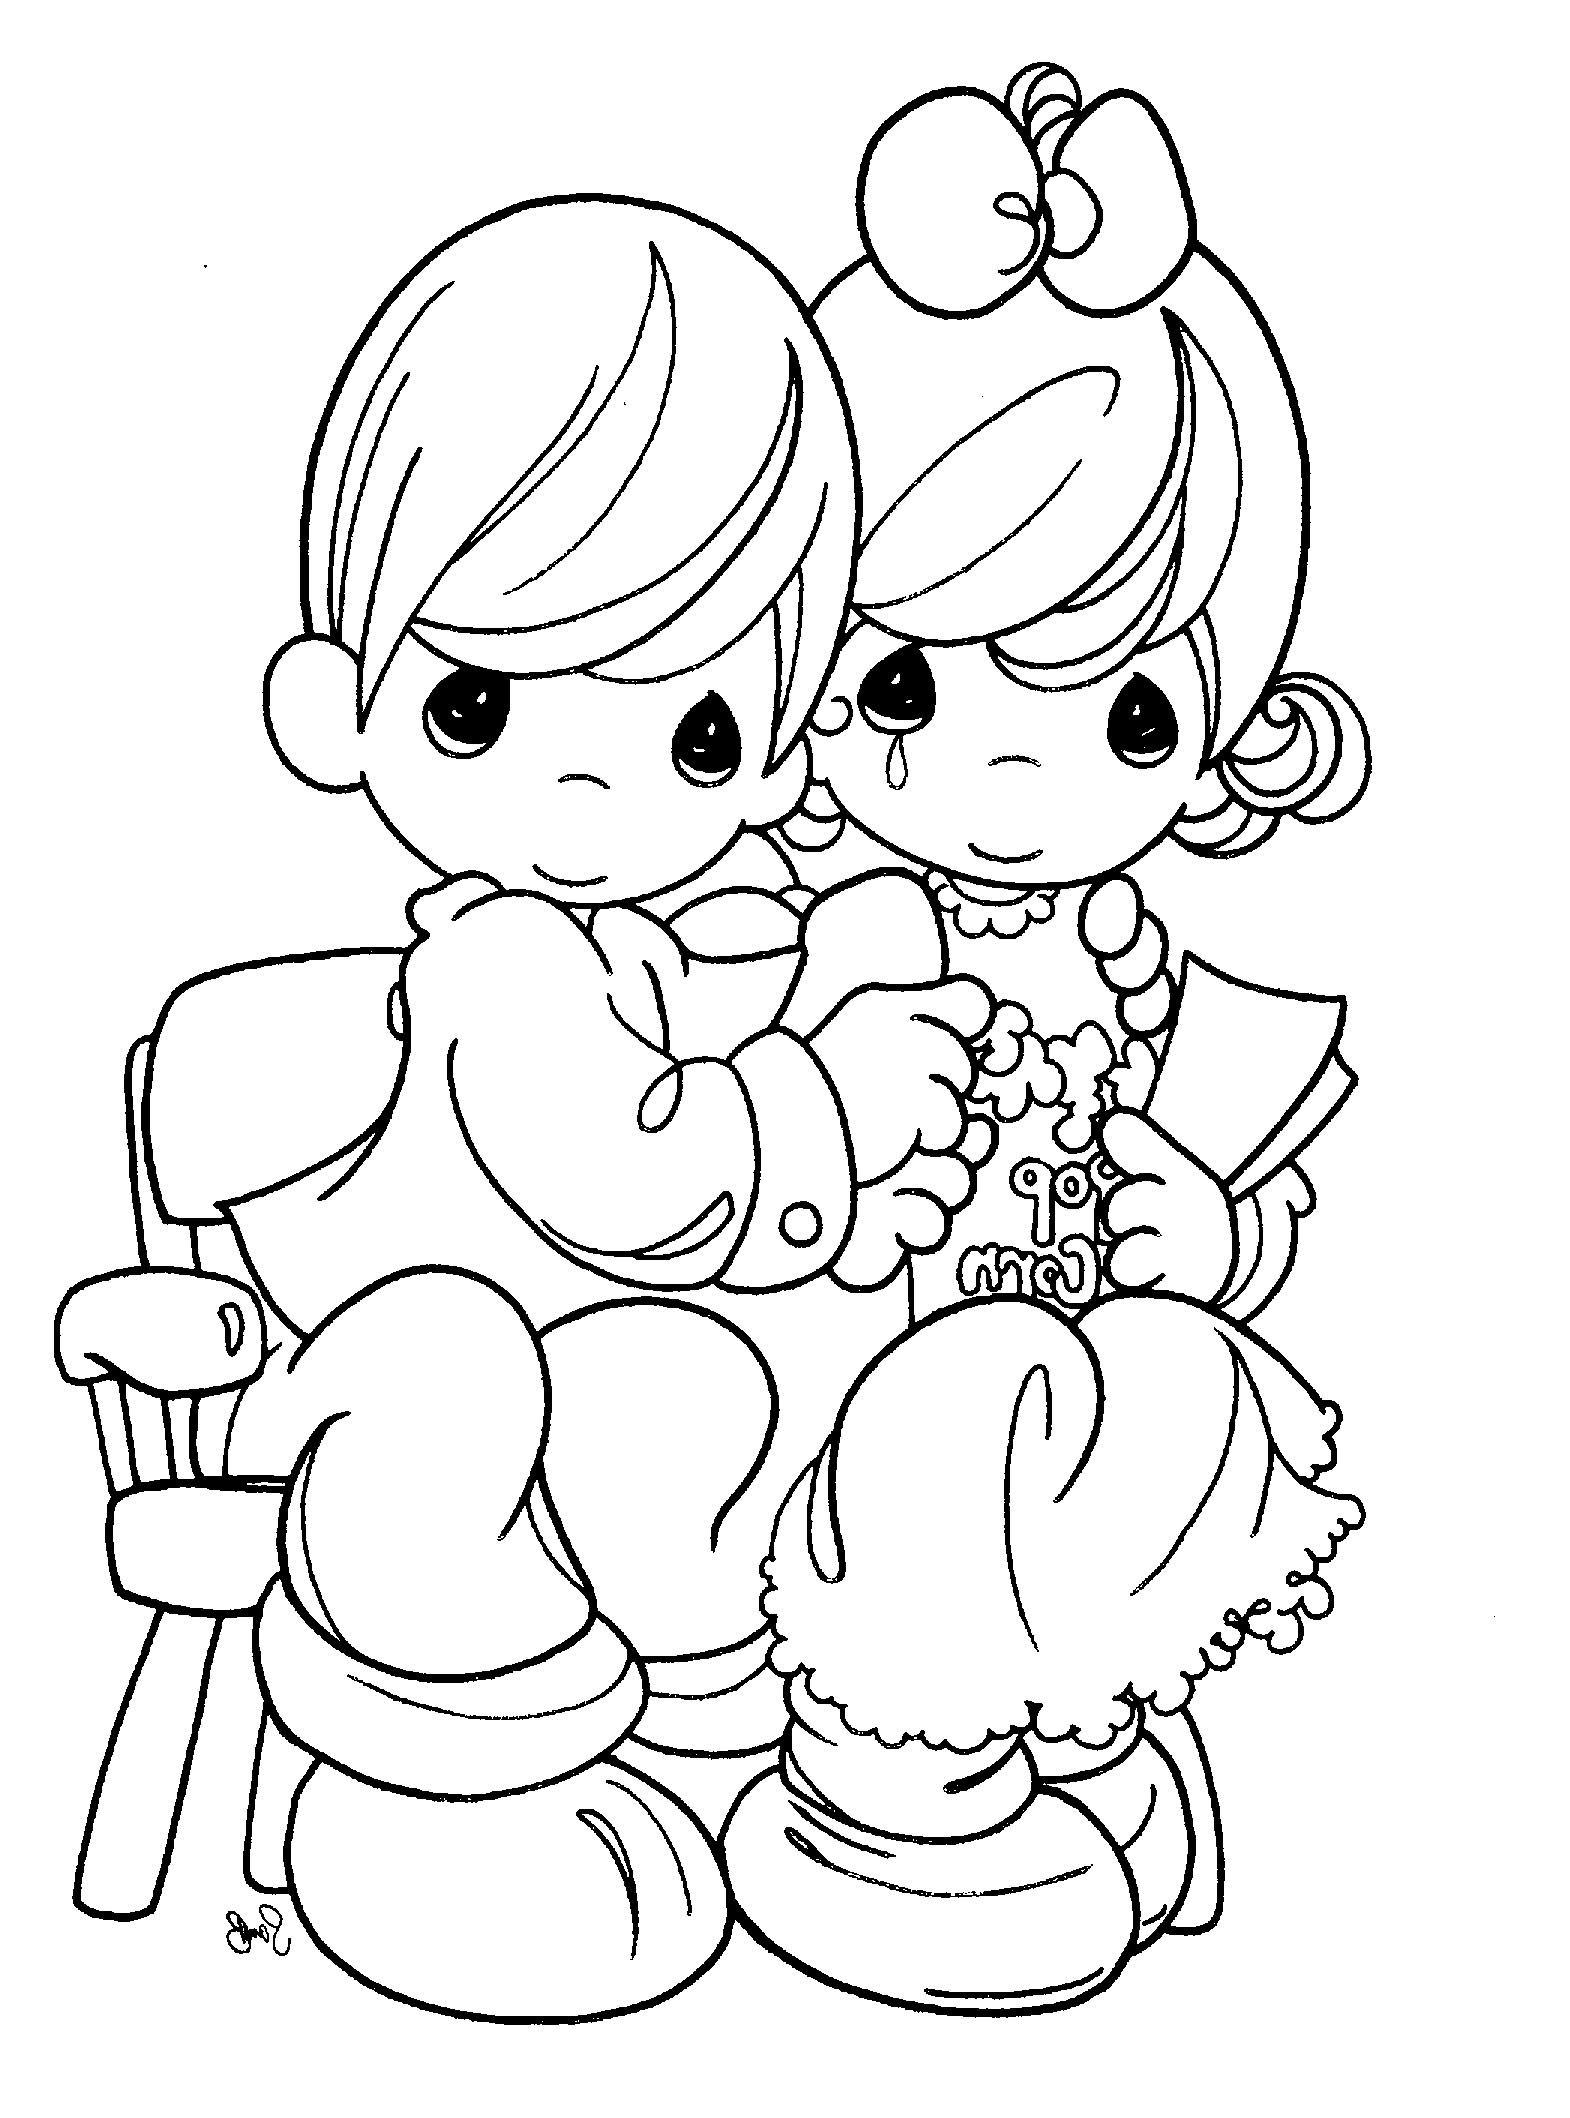 Precious moments coloring pages are being embraced precious